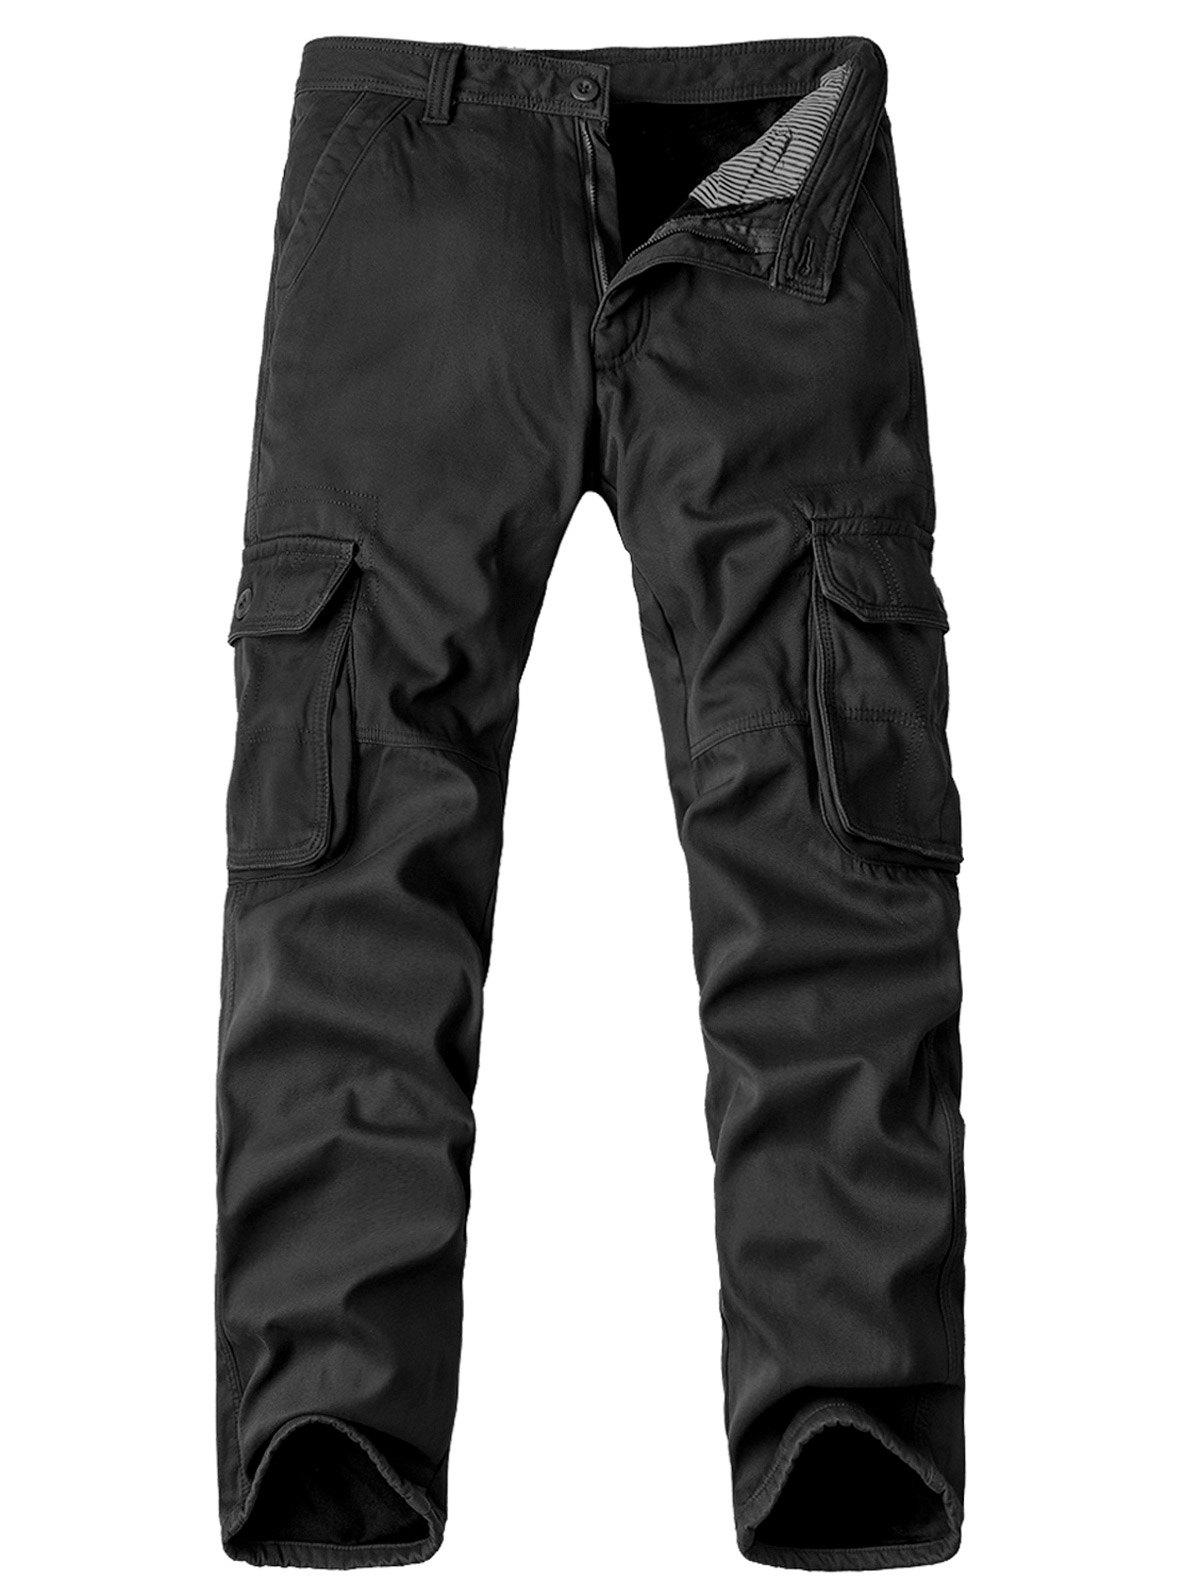 Chic Zipper Fly Pockets Embellished Straight Leg Fleece Cargo Pants